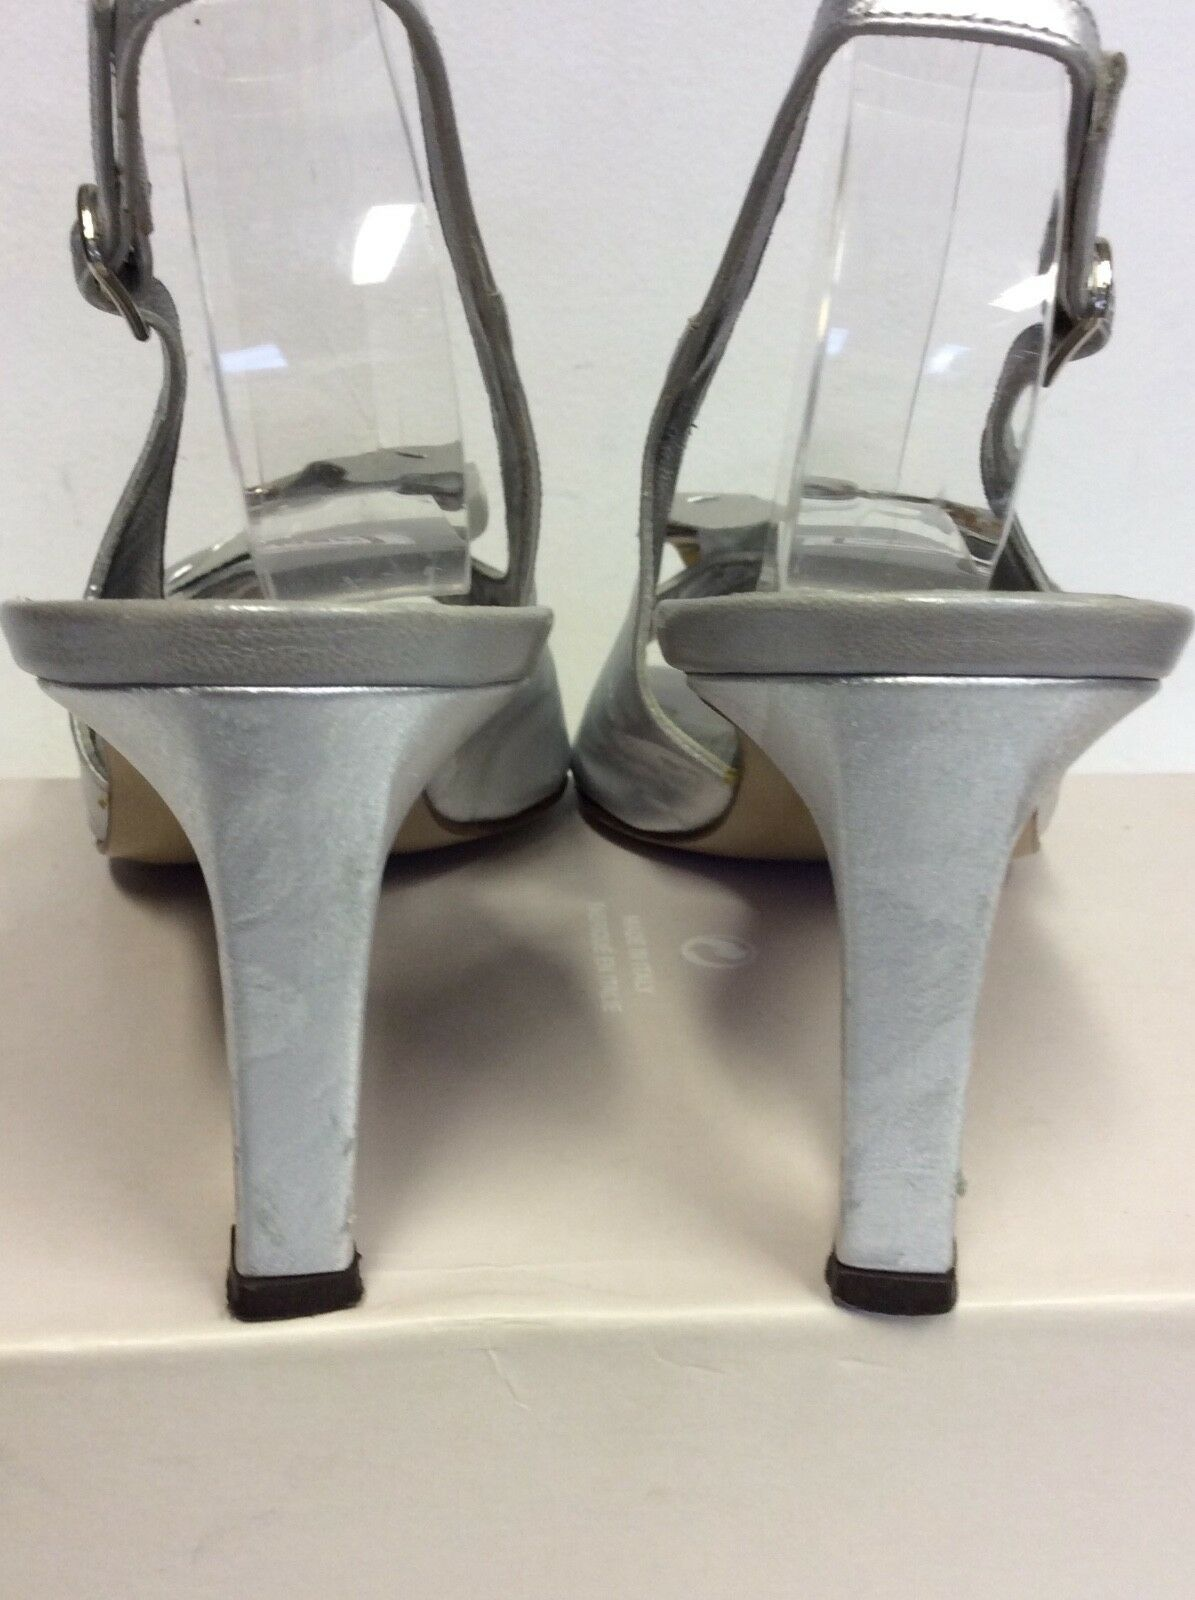 RENATA SILVER ALL HEELS LEATHER BOW TRIM SLINGBACK HEELS ALL SIZE 5.5/38.5 cebe5d